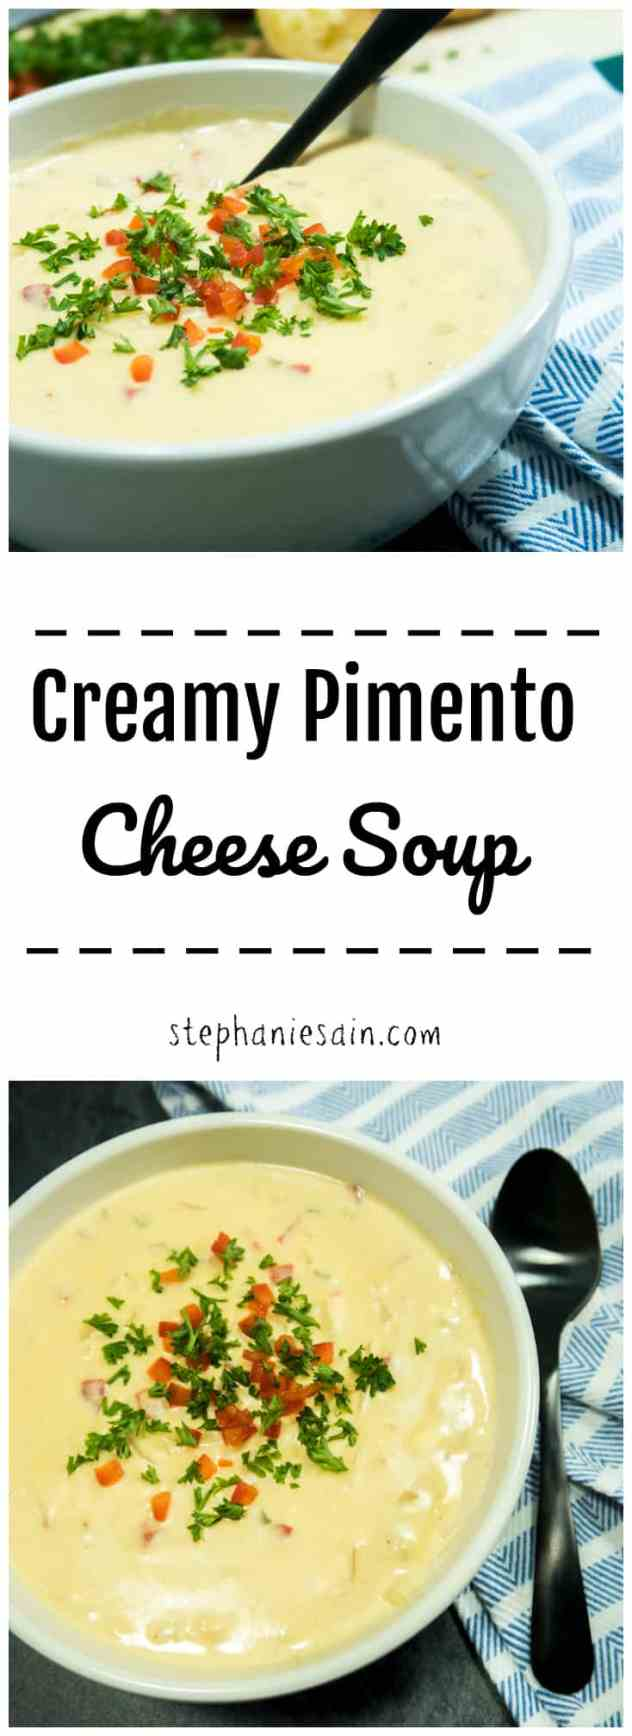 Creamy Pimento Cheese Soup is a thick, velvety smooth soup loaded with cheesy goodness & pimentos. Quick & Easy dinner the whole family will love. Vegetarian & Gluten Free.